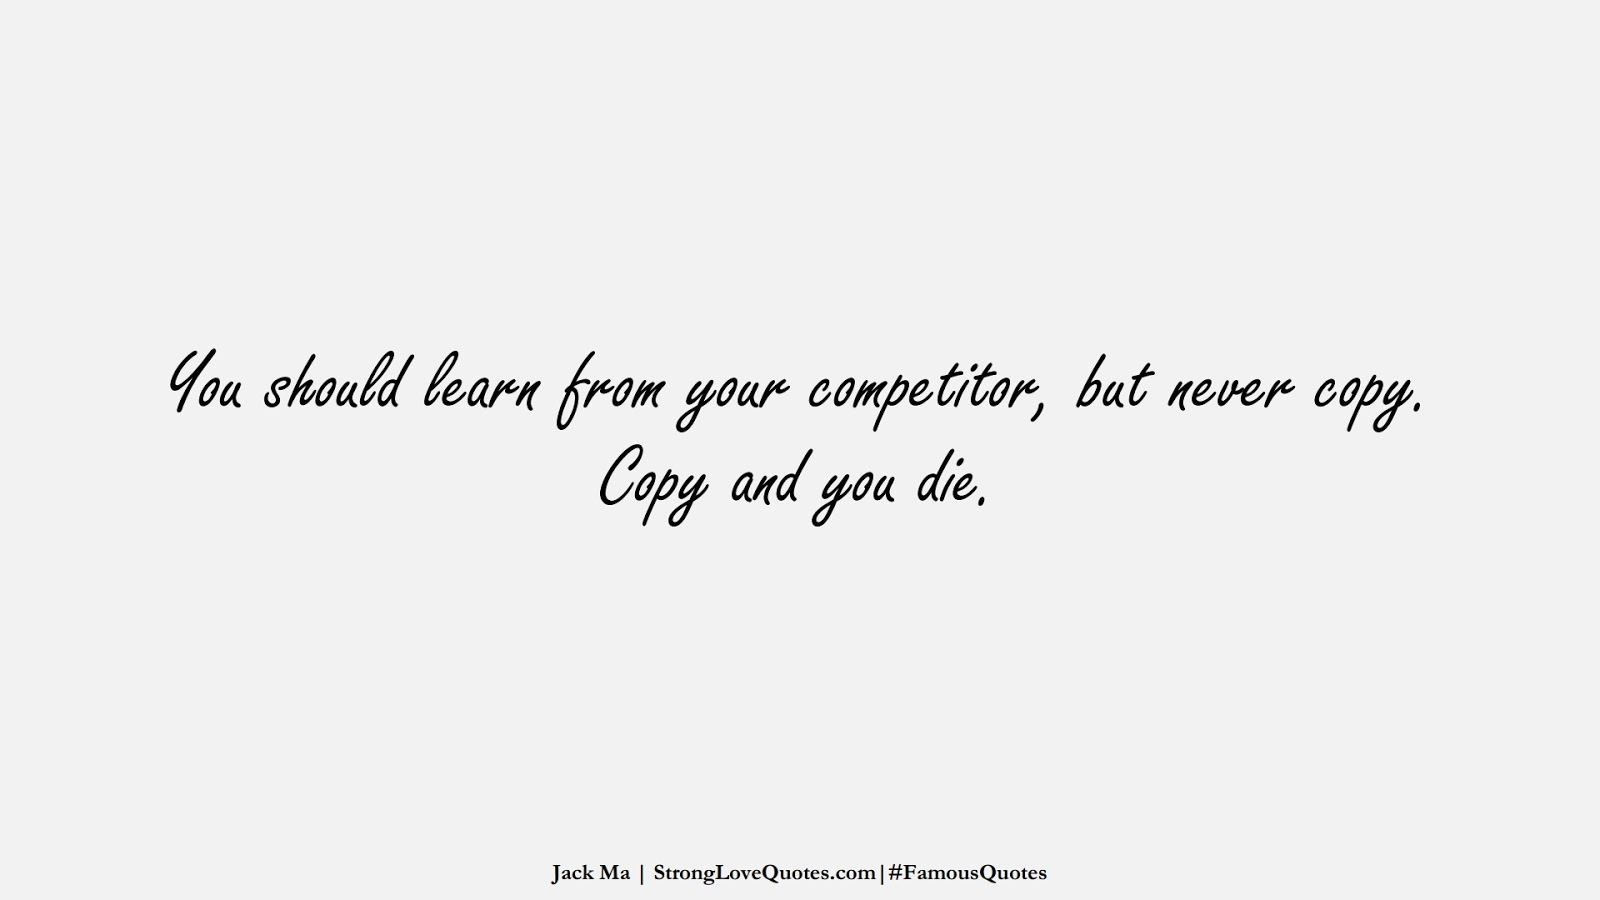 You should learn from your competitor, but never copy. Copy and you die. (Jack Ma);  #FamousQuotes